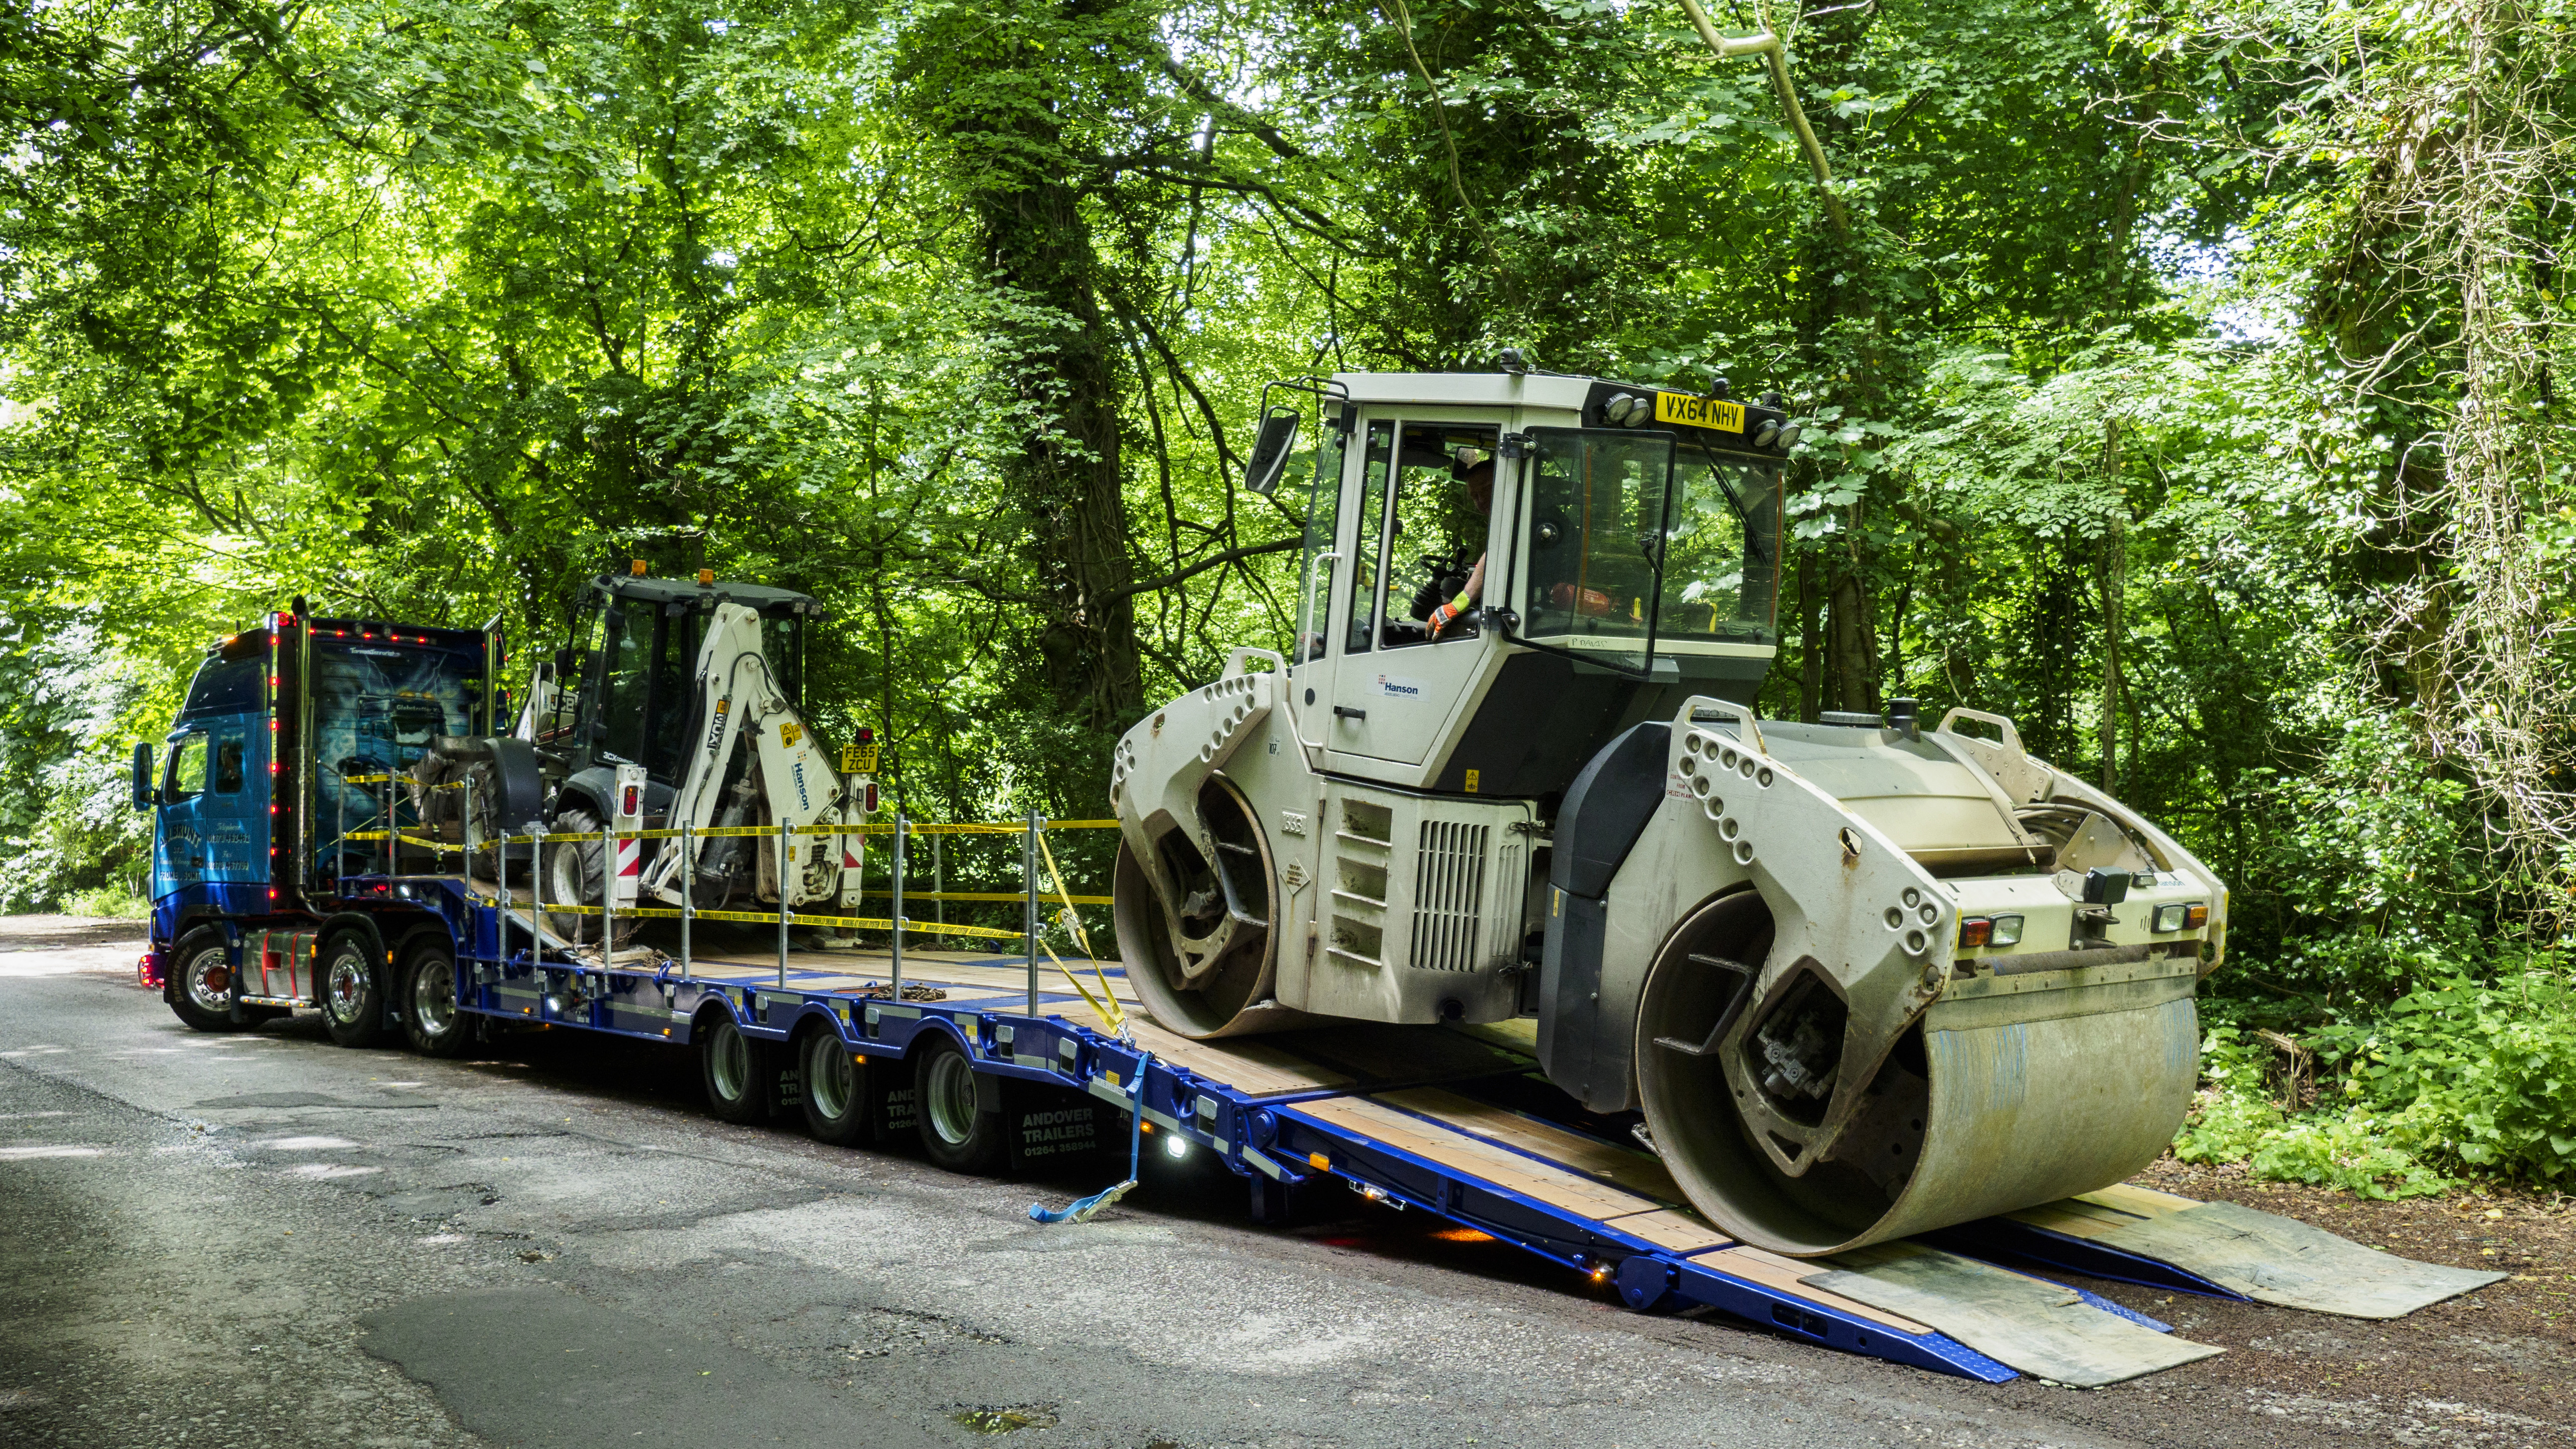 404-1705-2-Andover-Trailers-Step-Frame-AJ-Brunt - Andover Trailers